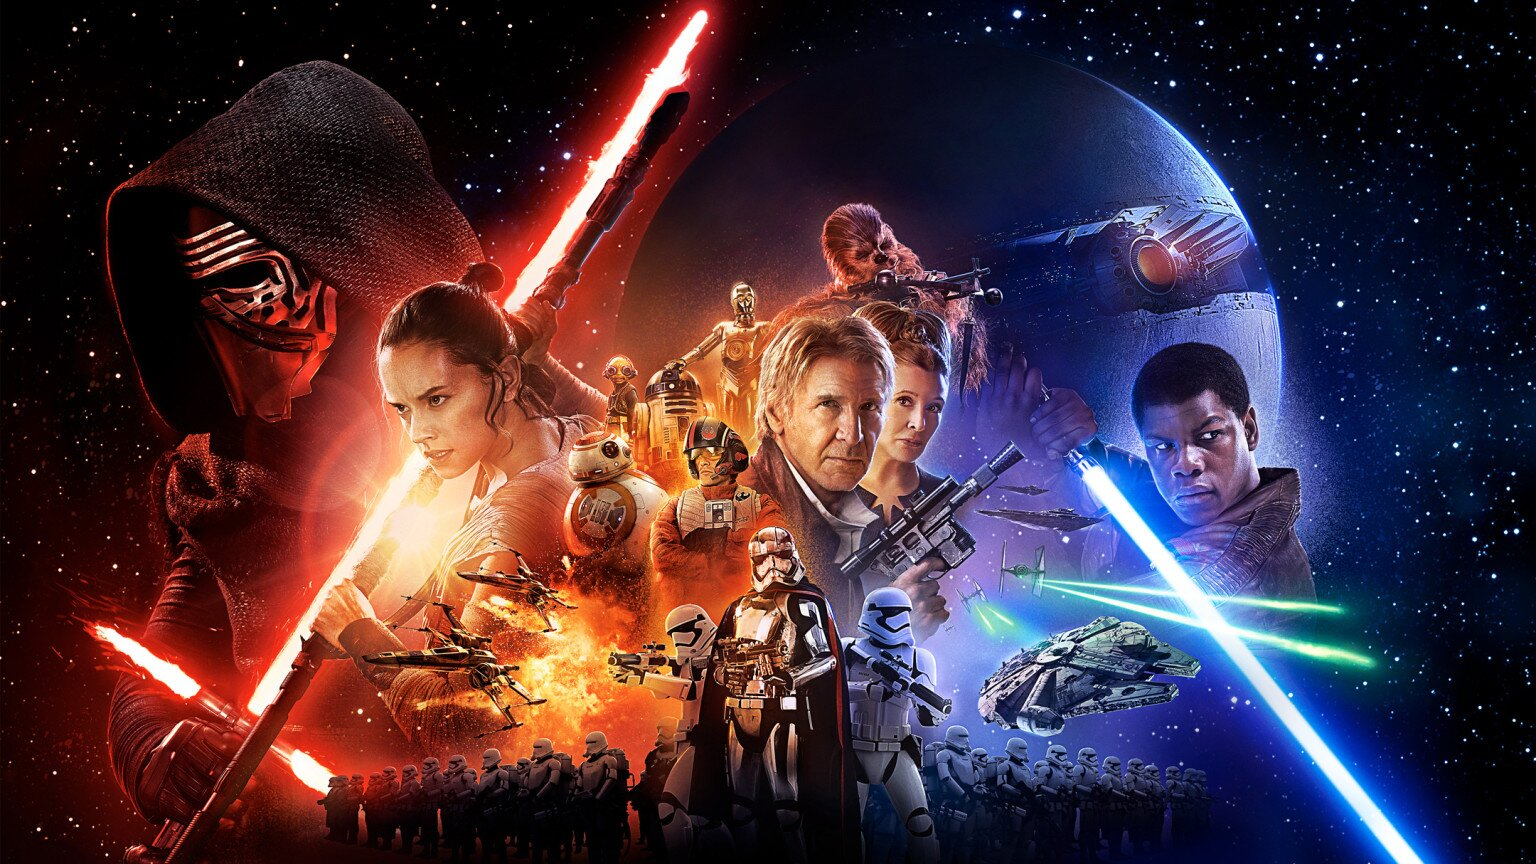 Star Wars: The Force Awakens poster and trailer announced! | EW.com